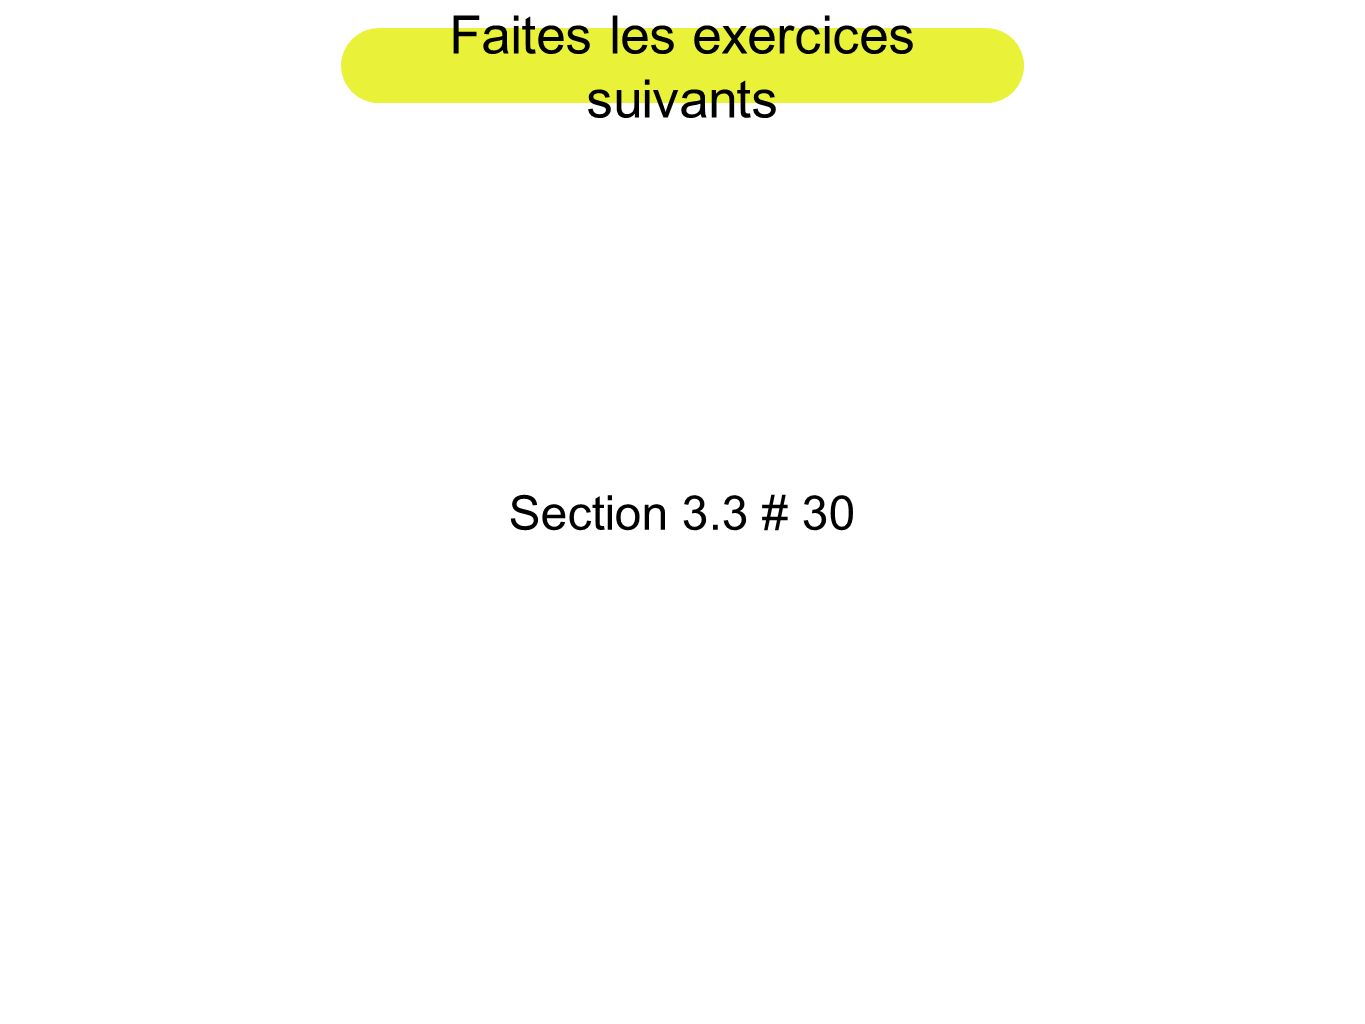 Faites les exercices suivants Section 3.3 # 30